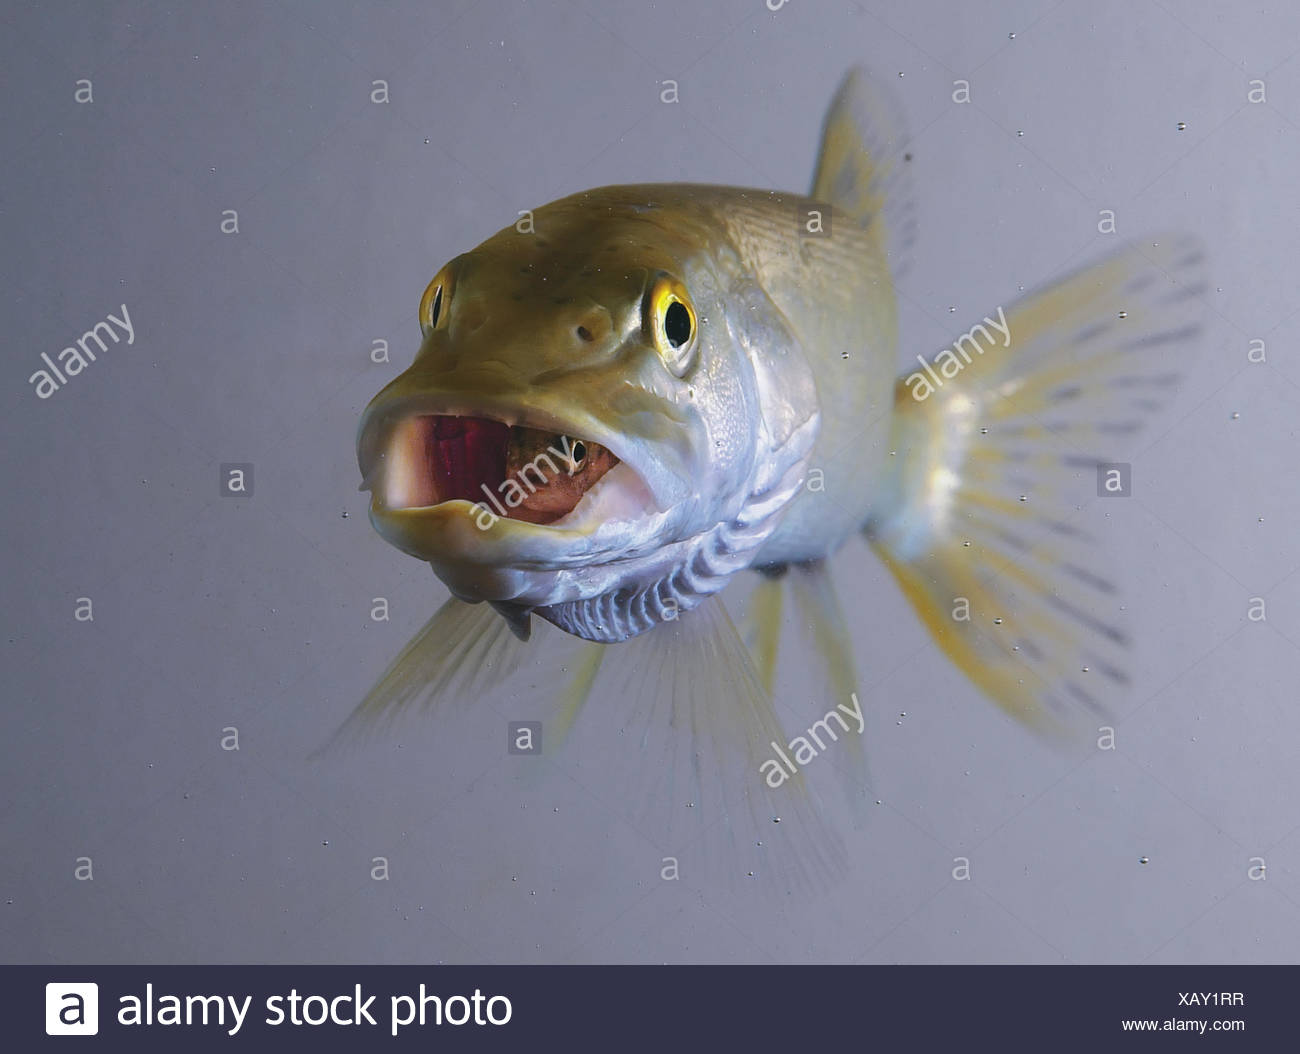 CAPTIVE: Northern Pike swallows Rainbow Trout, Department of Fish & Game aquarium in Anchorage, Southcentral Alaska Stock Photo